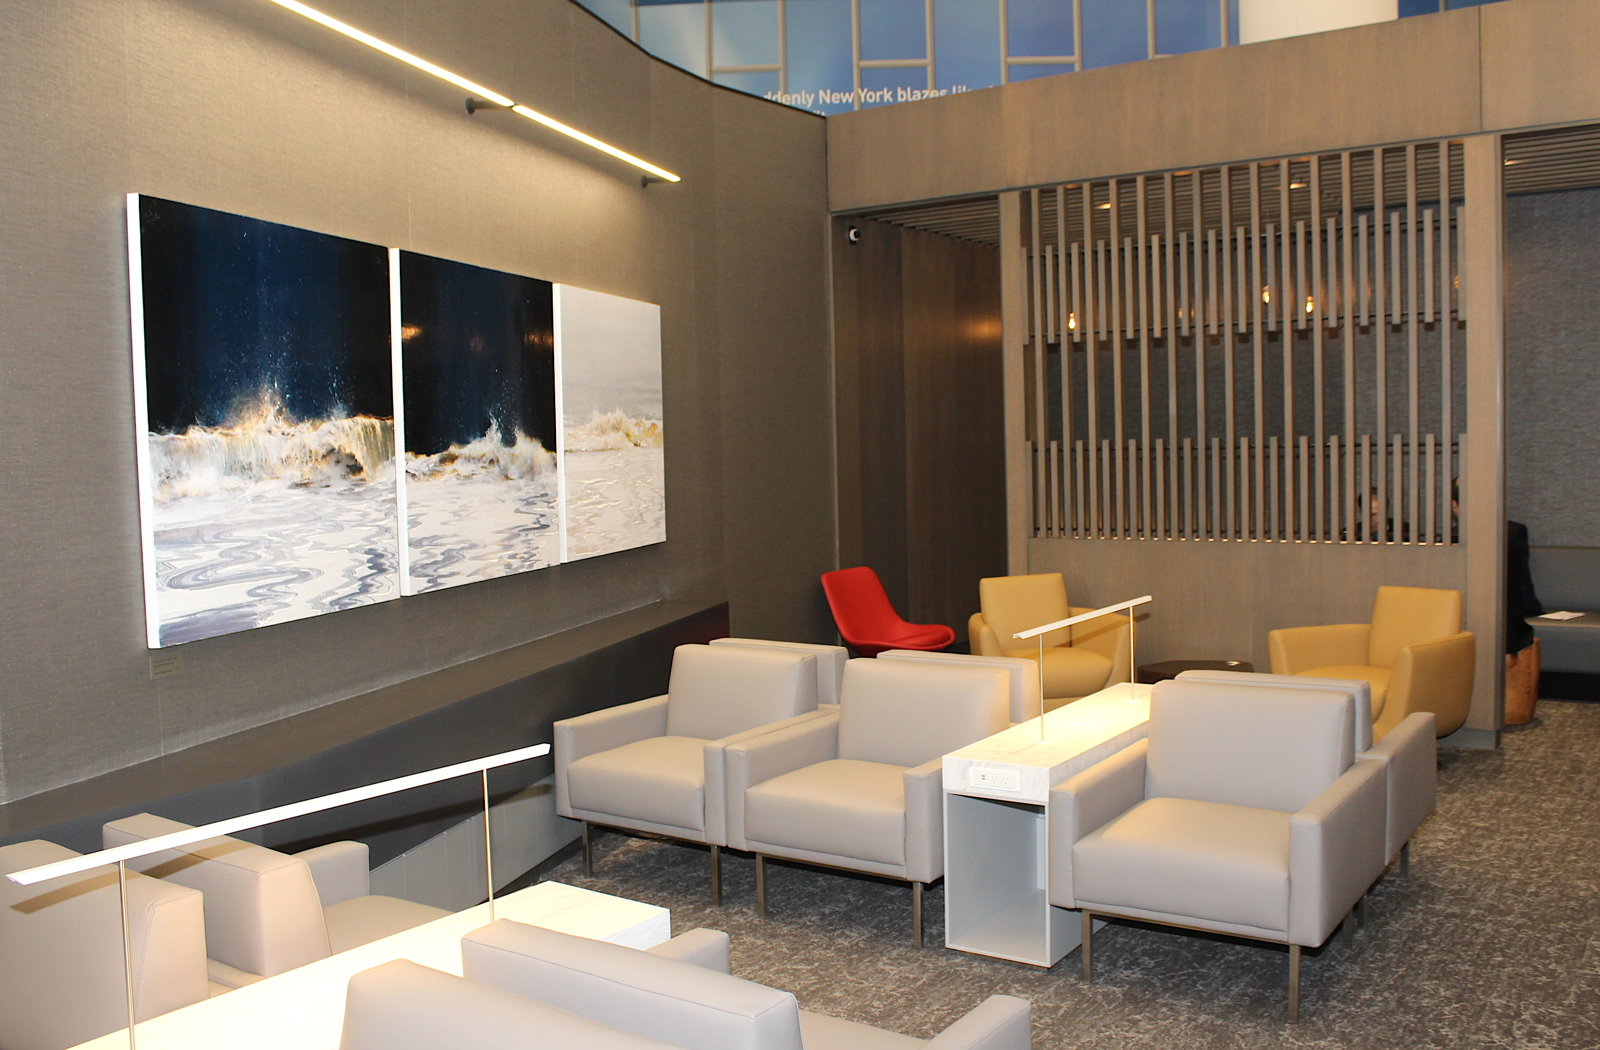 The lounge was designed by global design firm HOK, which also designed LaGuardia's new concourse in Terminal B.